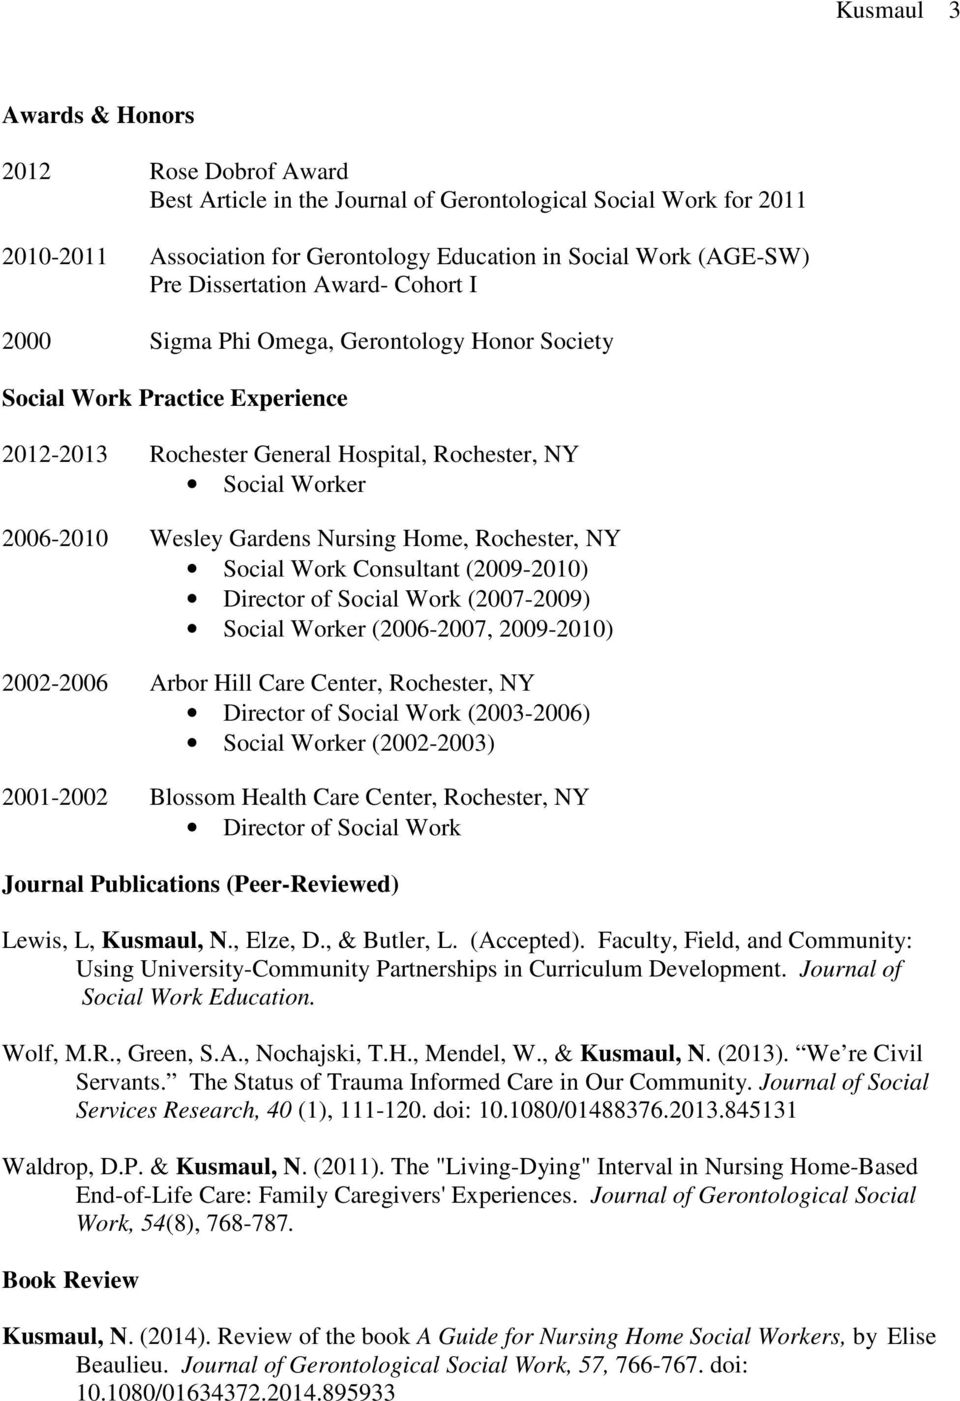 Nursing Home, Rochester, NY Social Work Consultant (2009-2010) Director of Social Work (2007-2009) Social Worker (2006-2007, 2009-2010) 2002-2006 Arbor Hill Care Center, Rochester, NY Director of